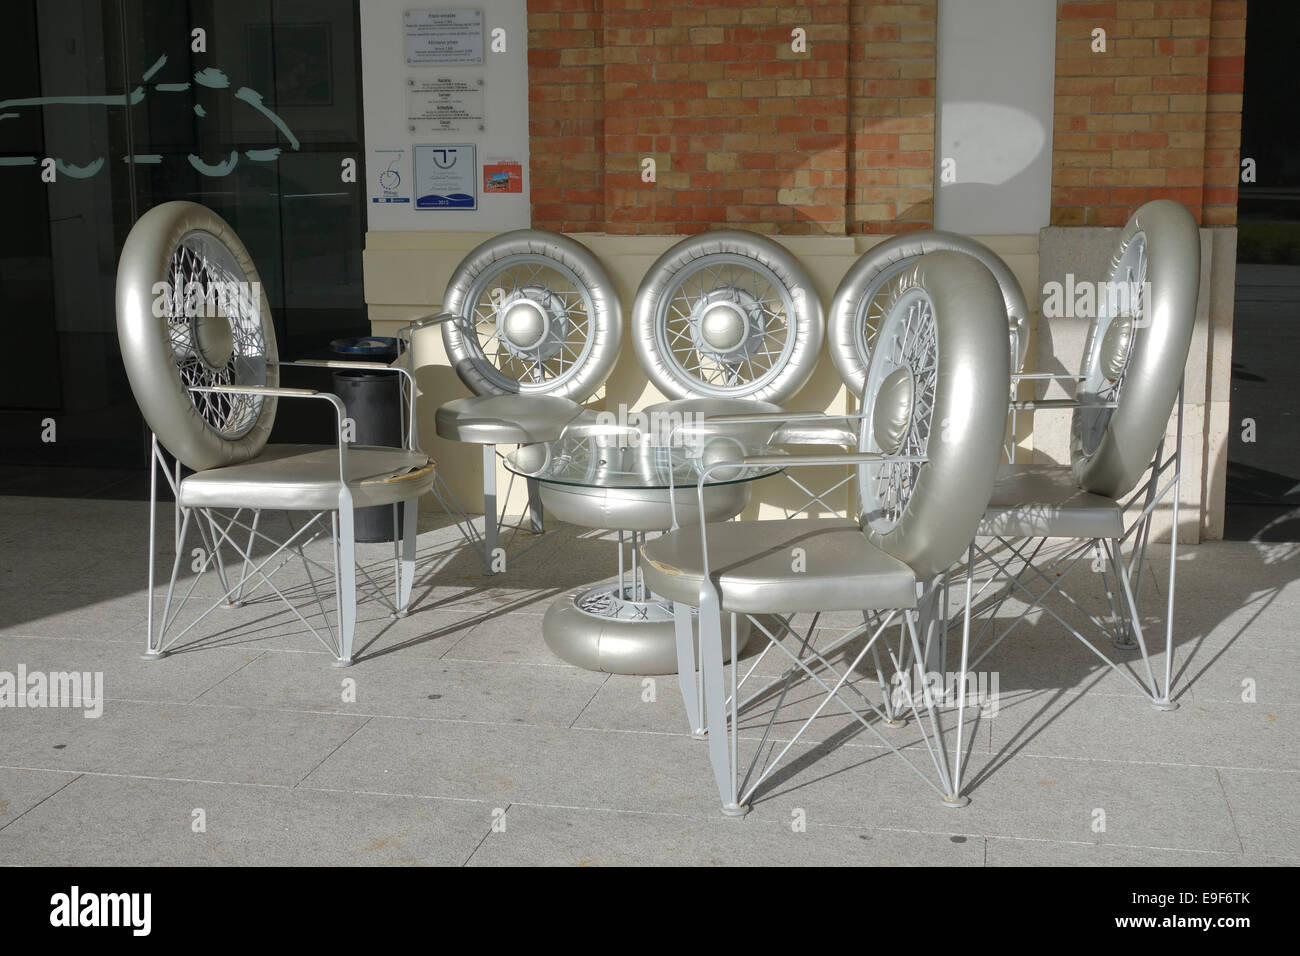 Terrace made out of wheels at Car, Automobile Museum of Málaga, Andalusia, Spain. - Stock Image